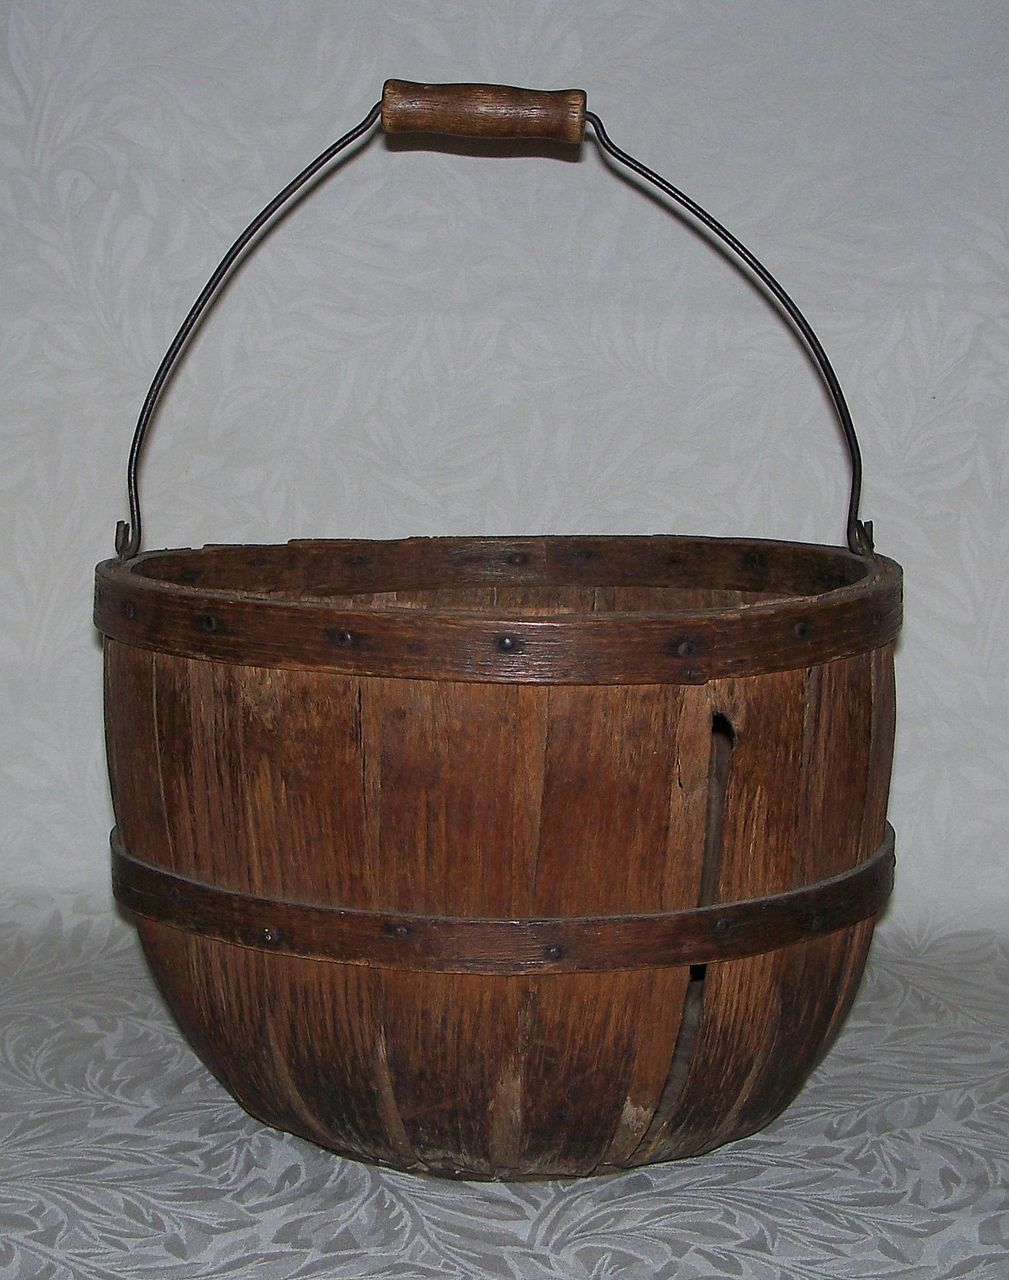 Antique Apple Basket - New England